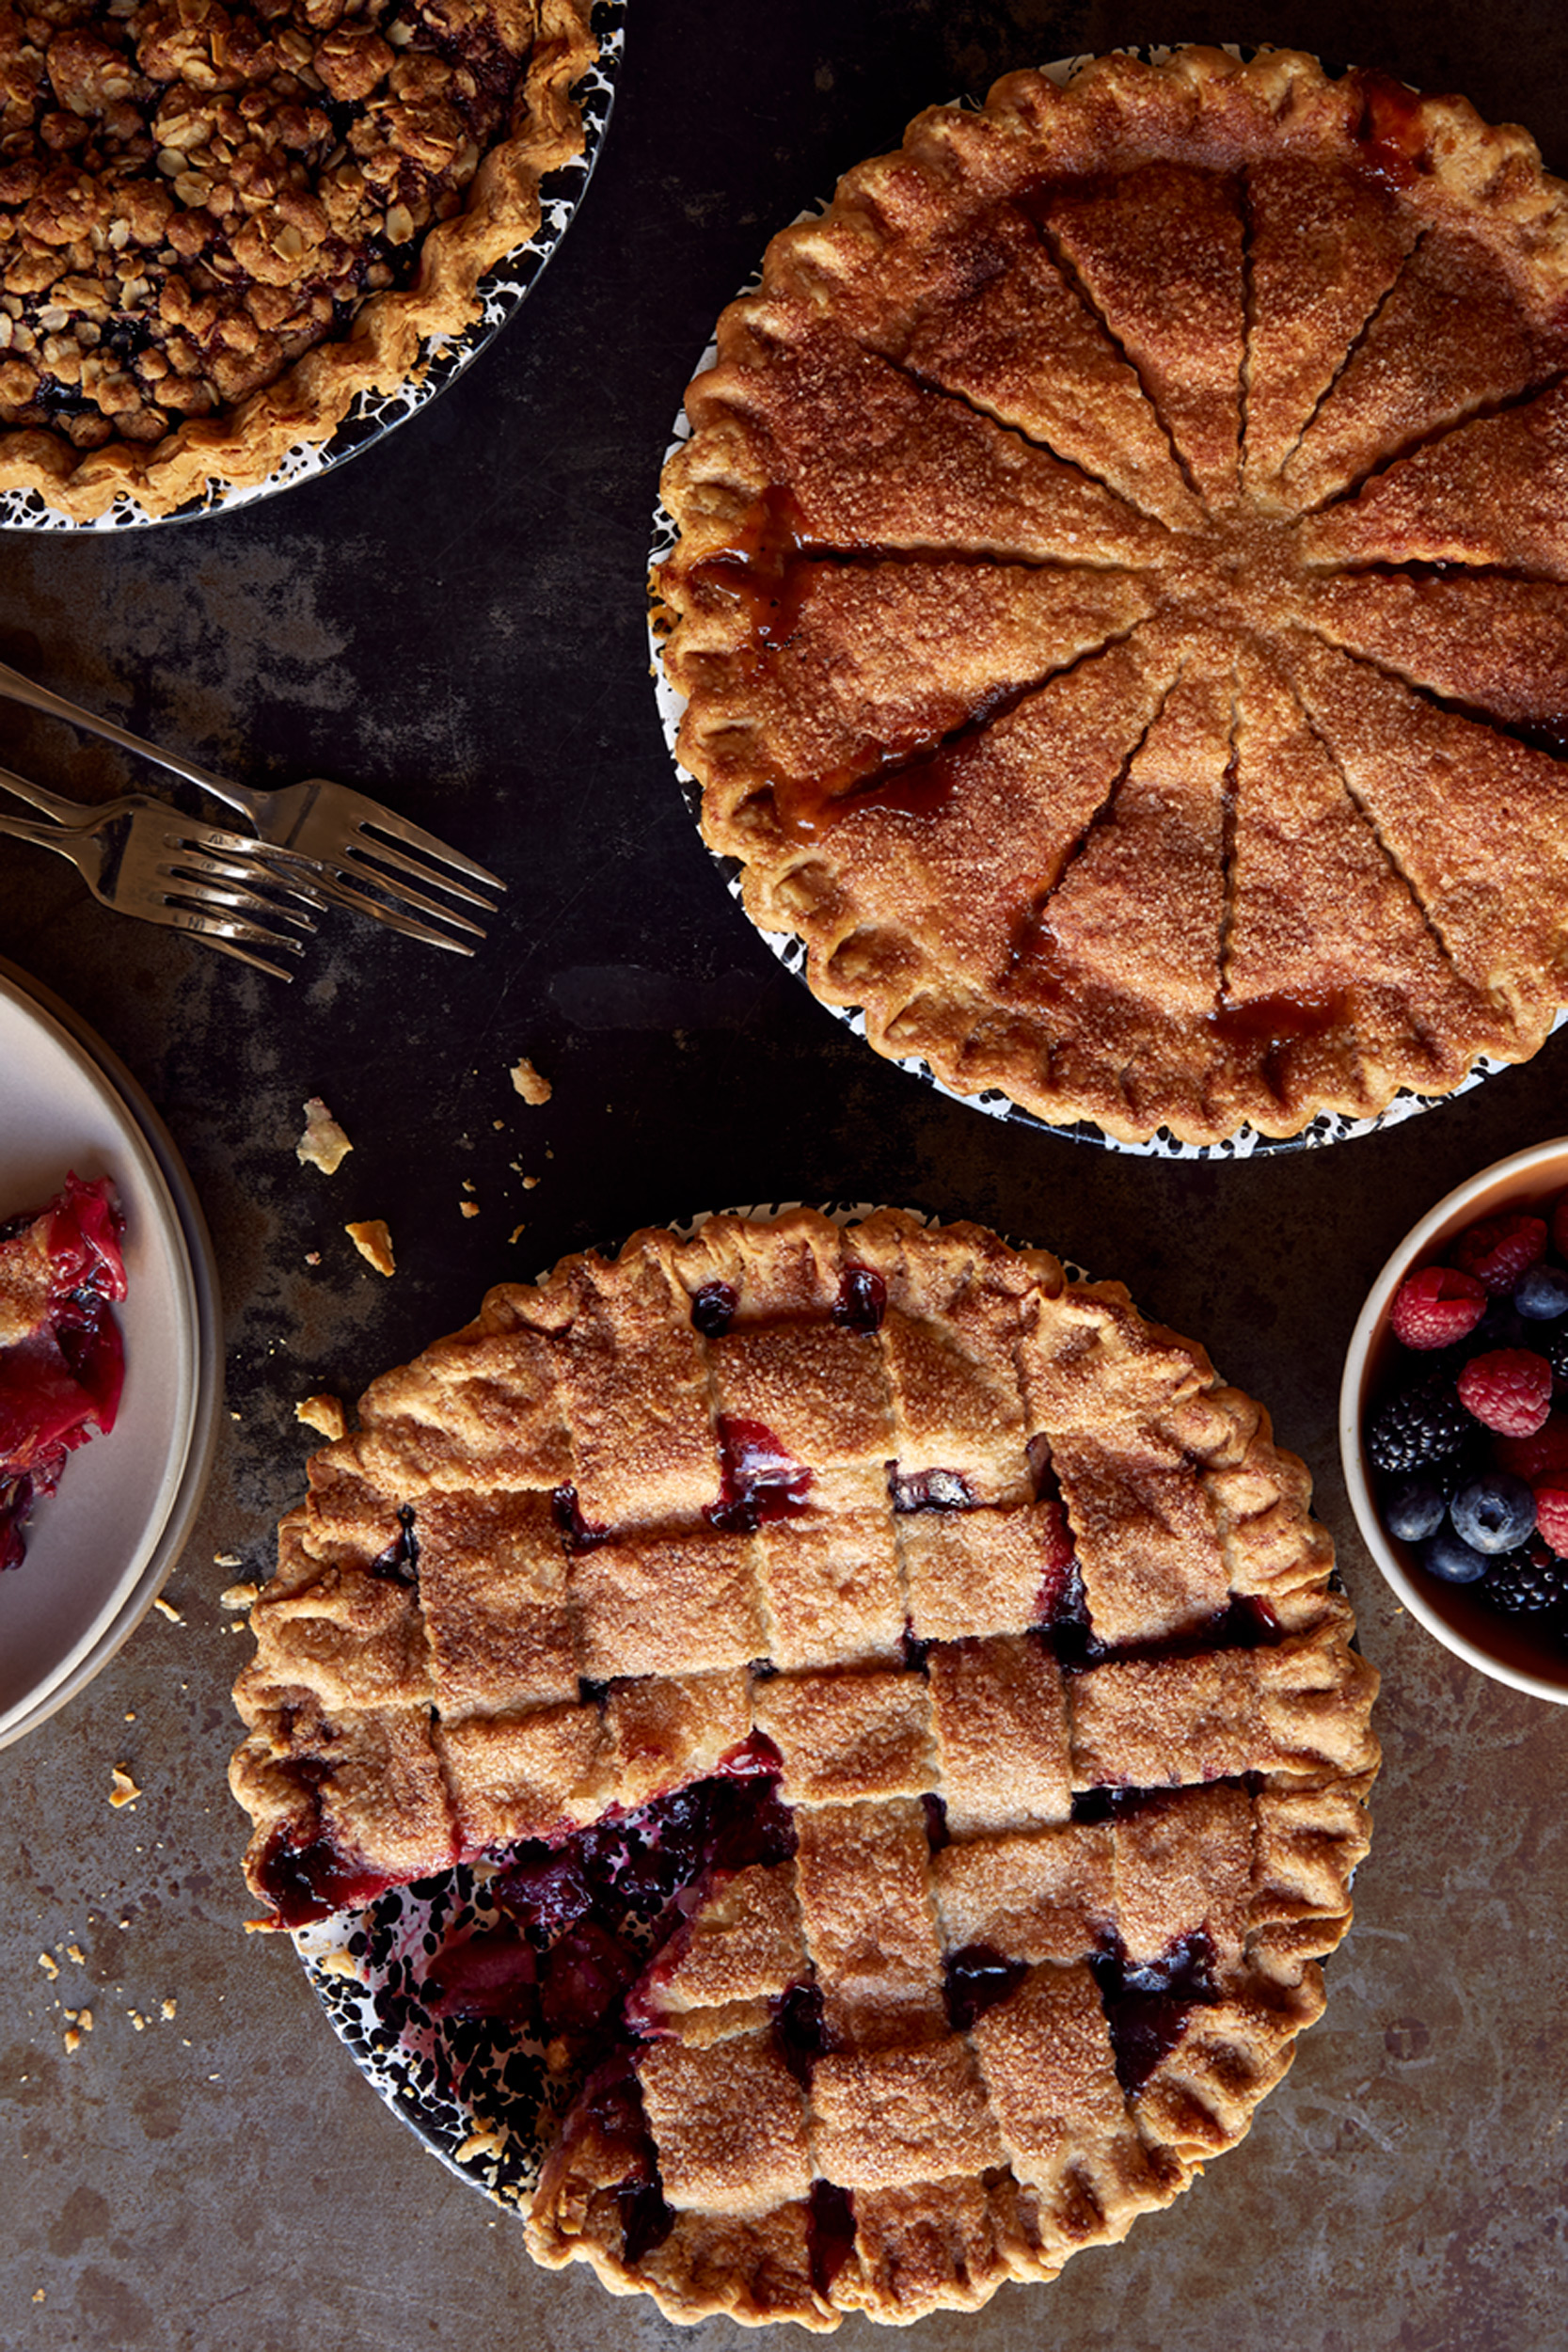 Katie Newburn | San Francisco Bay Area Food and Lifestyle Photographer | Pies